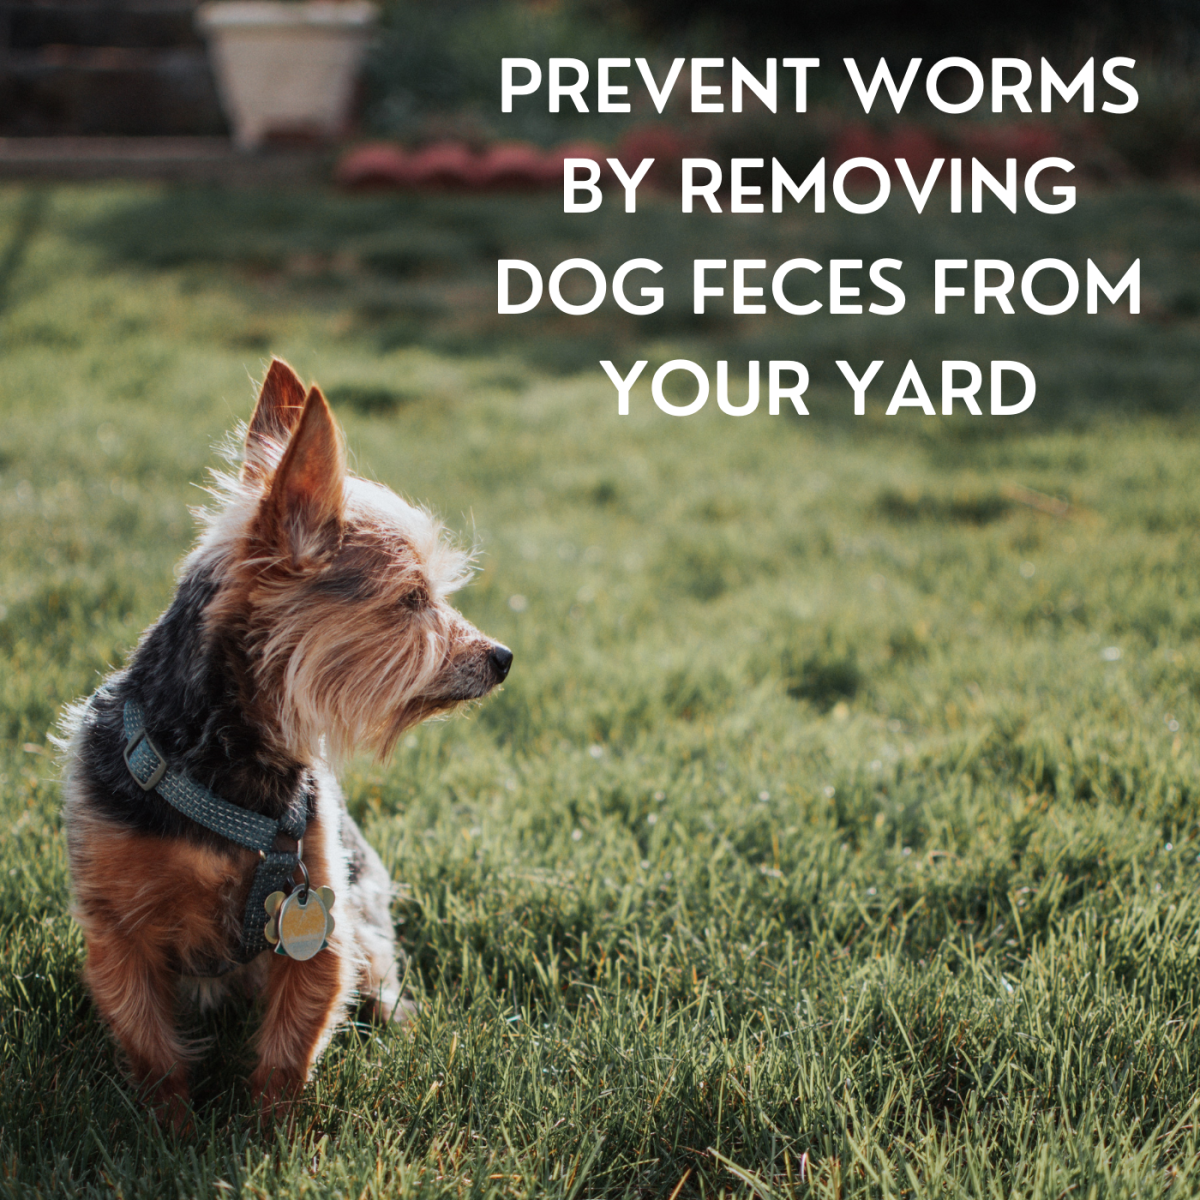 Dogs can contract whipworm by ingesting feces, so make sure to keep your yard clean.